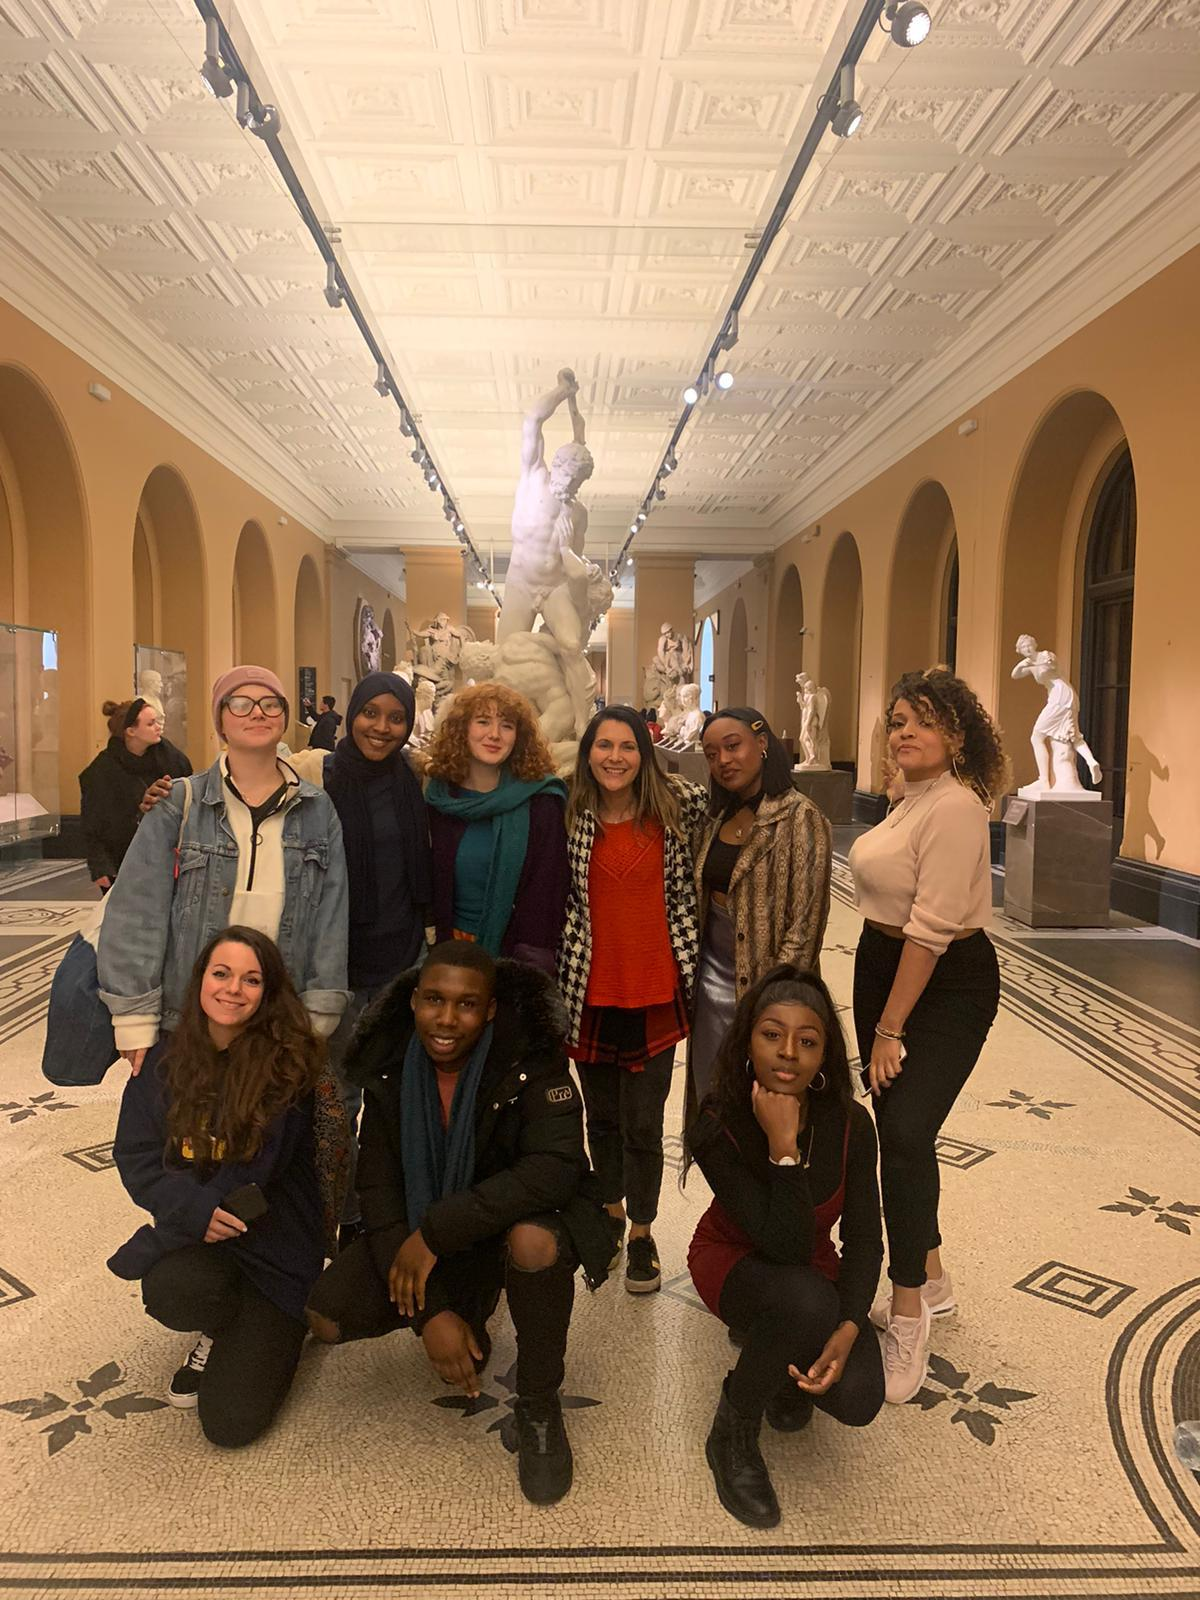 Group of young people (young collective) at the Victoria and Albert Museum